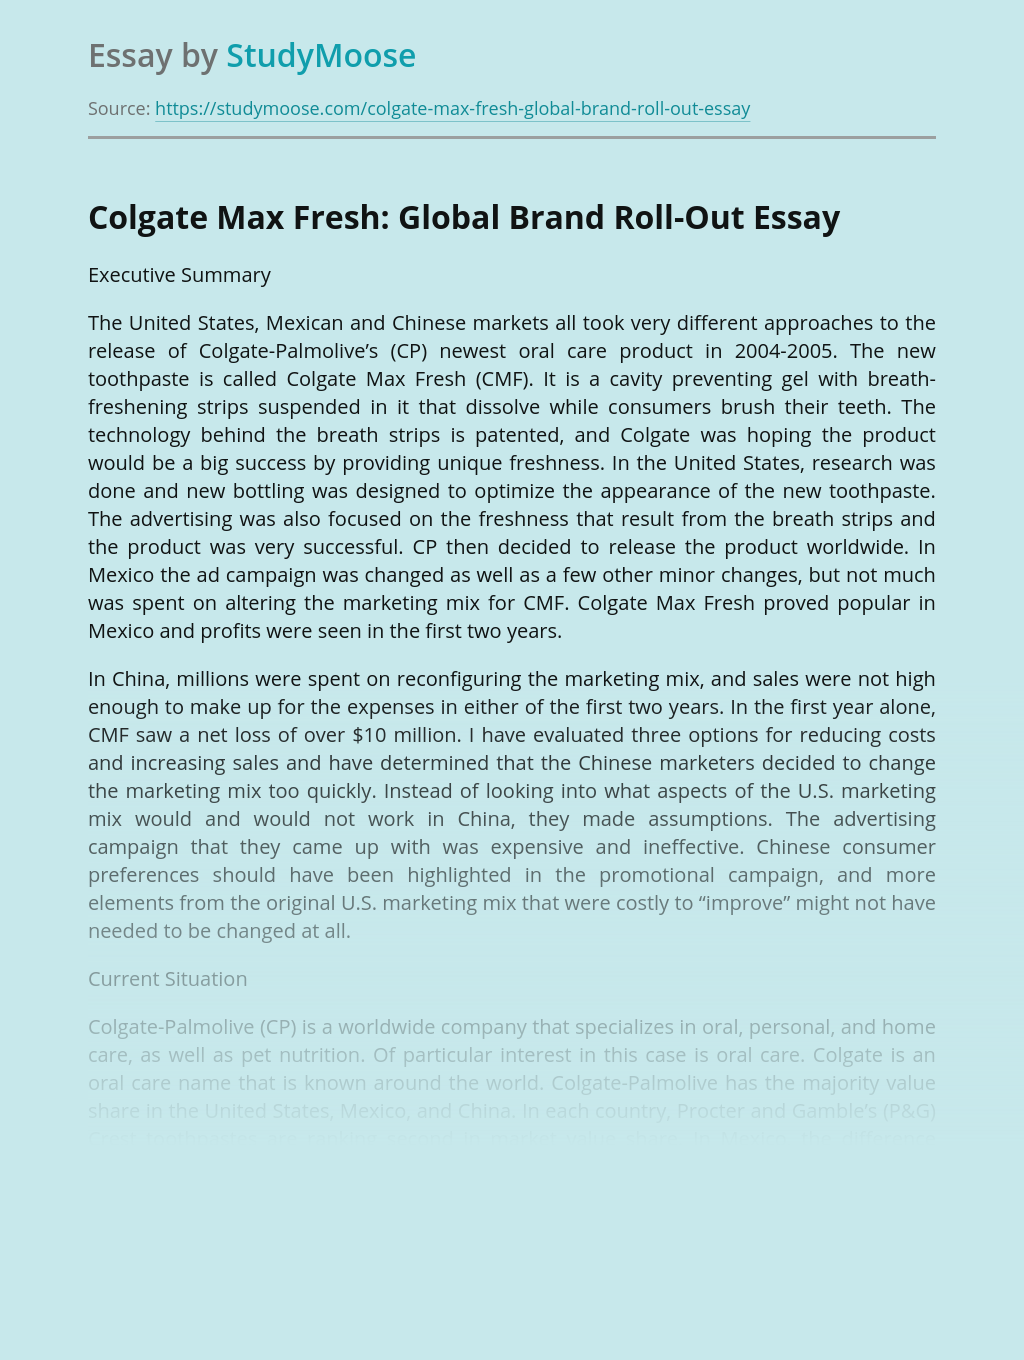 Colgate Max Fresh: Global Brand Roll-Out